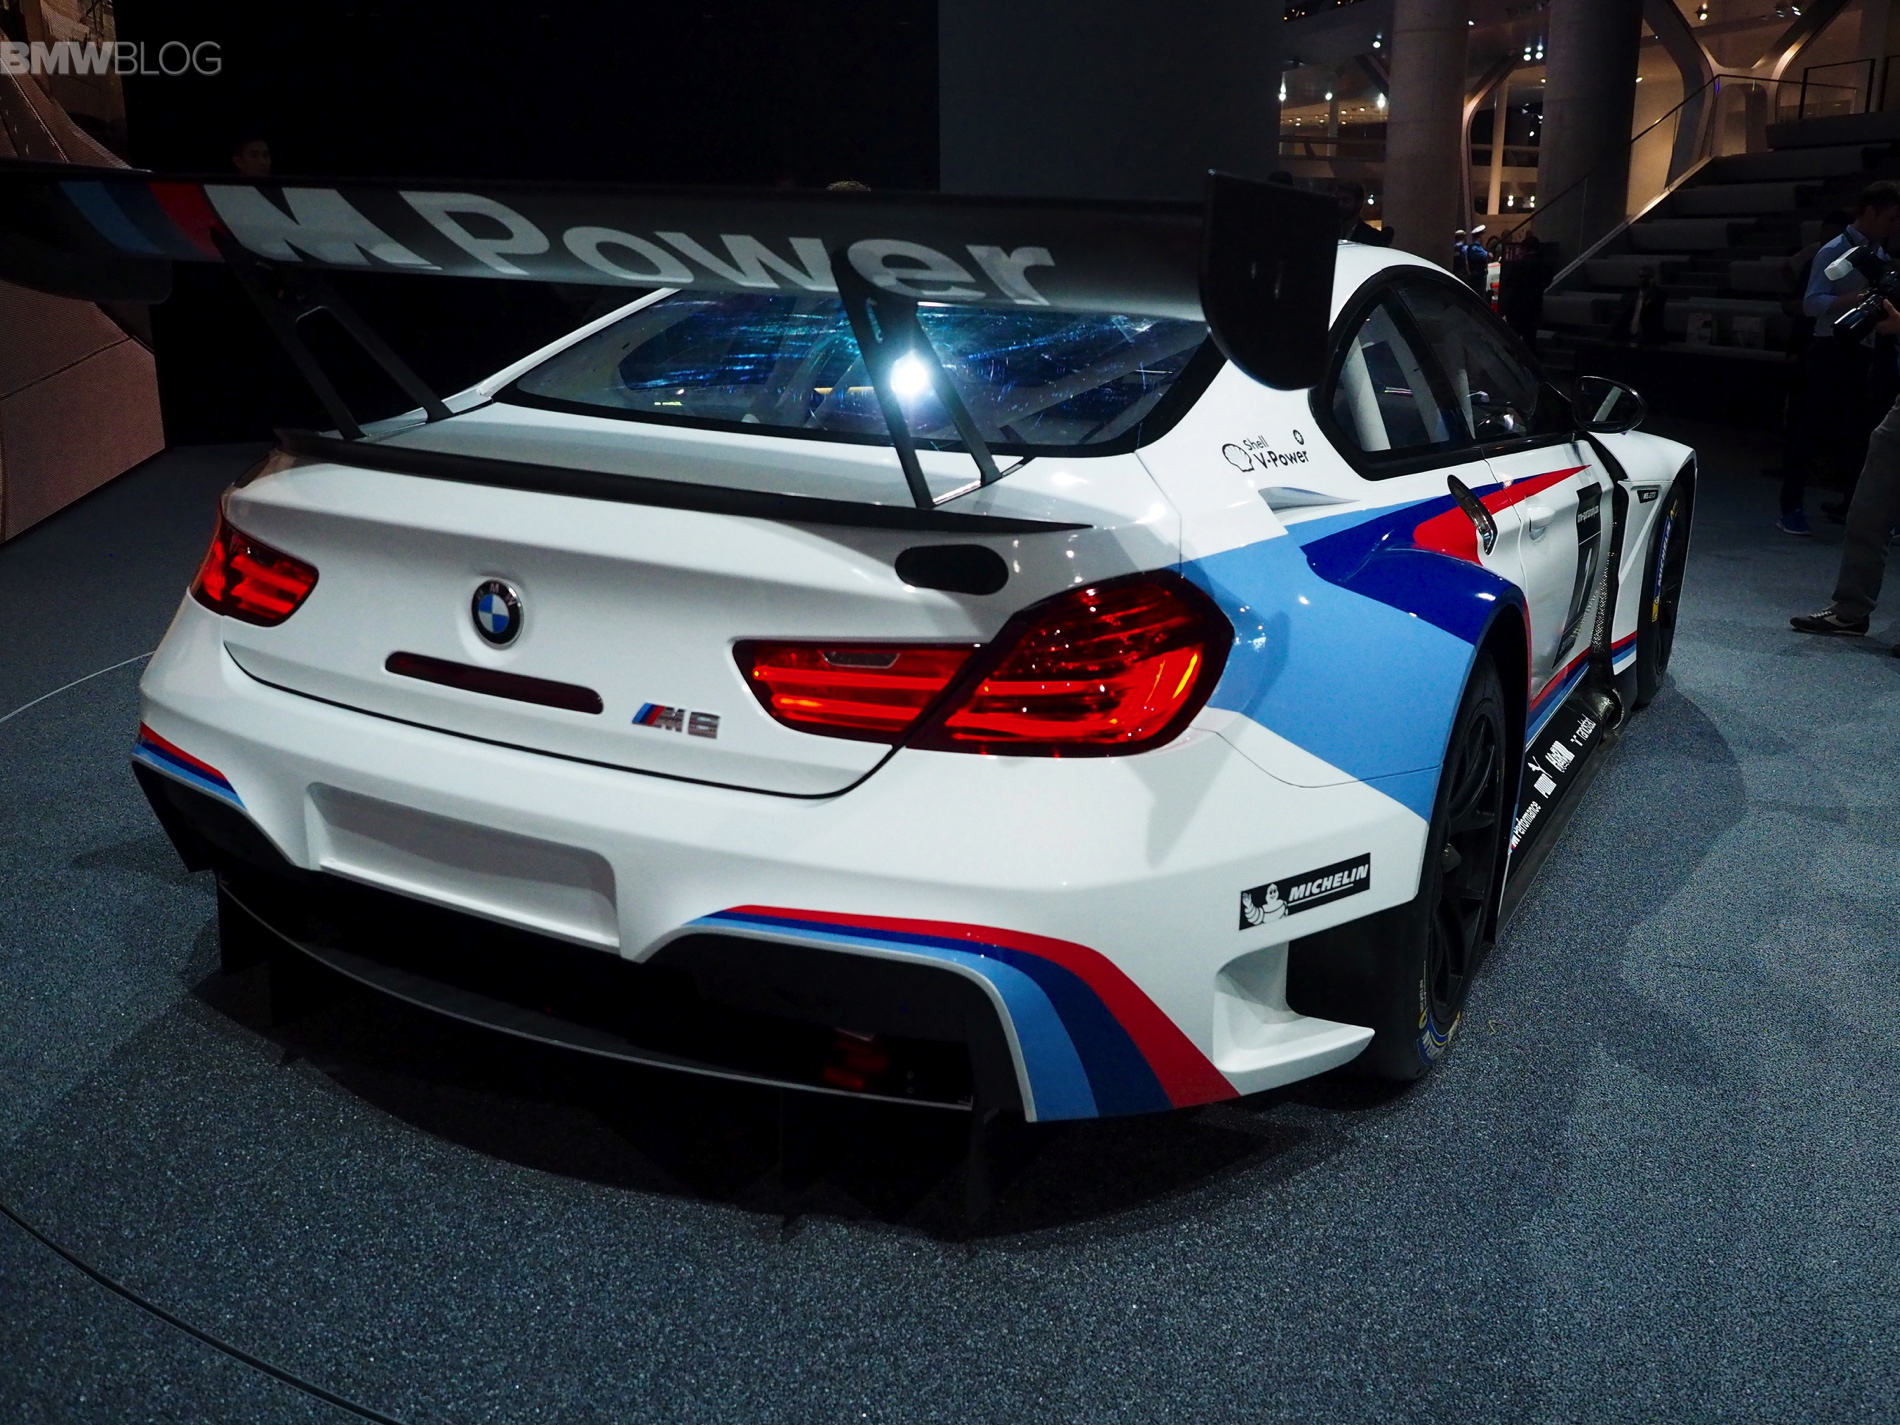 bmw m6 gt3 photos and videos from frankfurt motor show. Black Bedroom Furniture Sets. Home Design Ideas